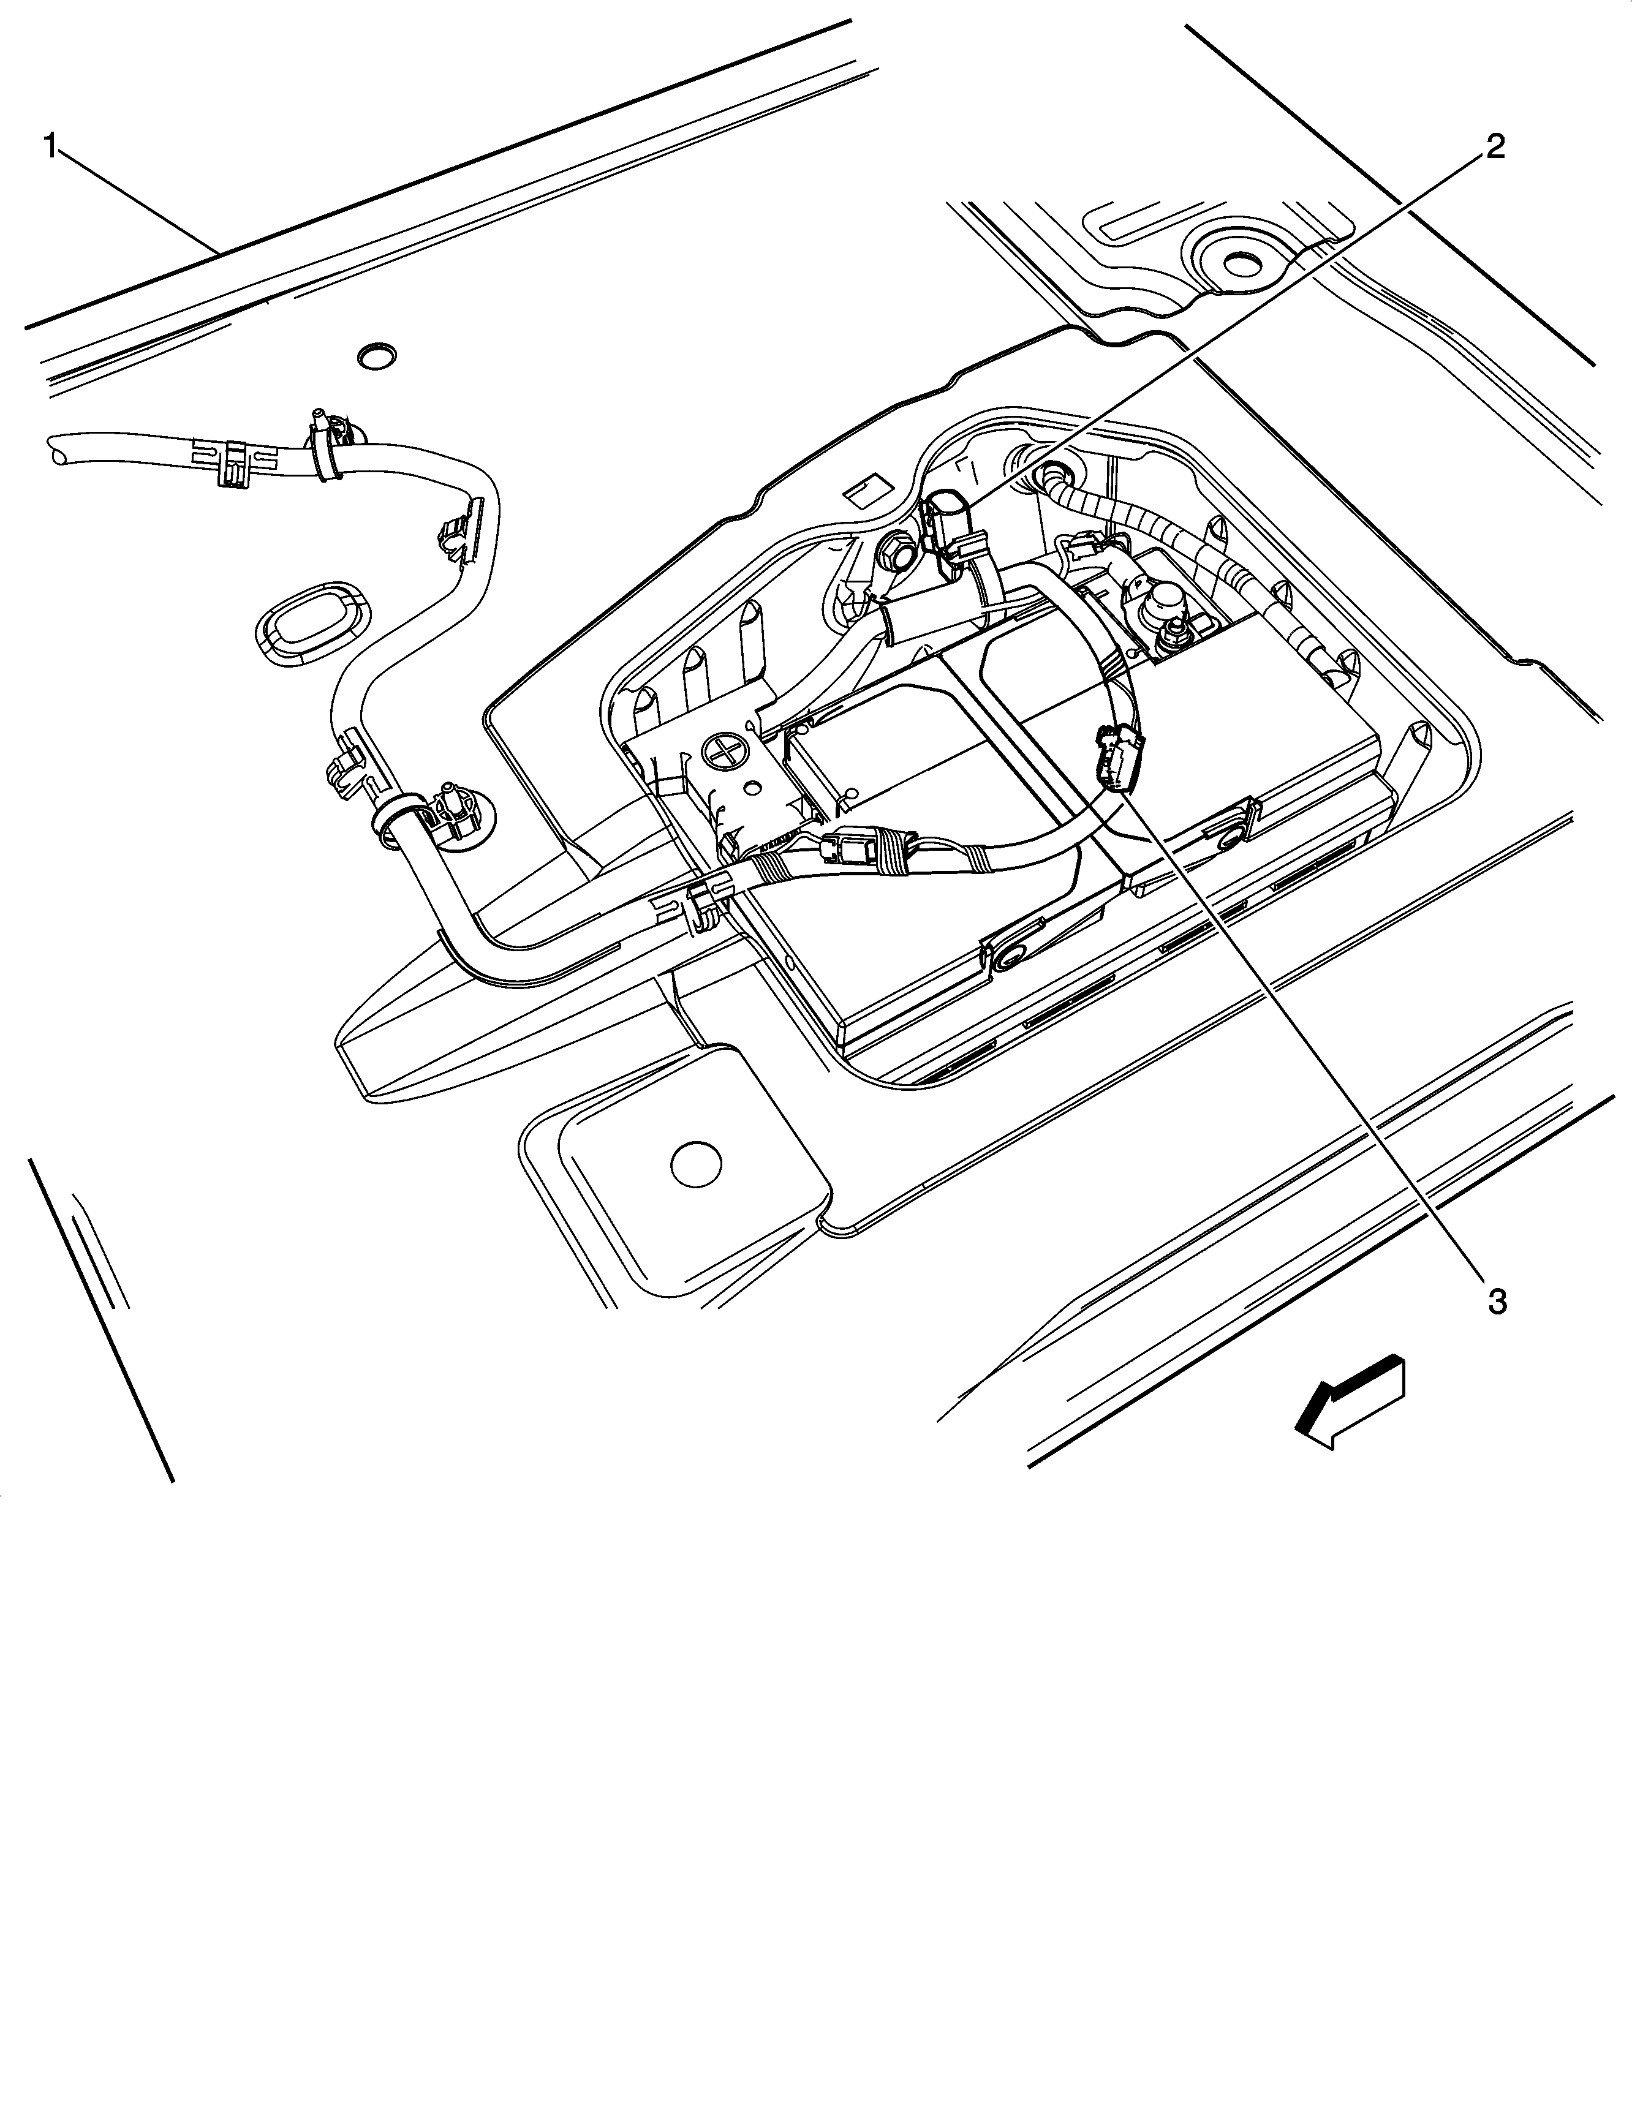 2013 honda ridgeline engine diagram html